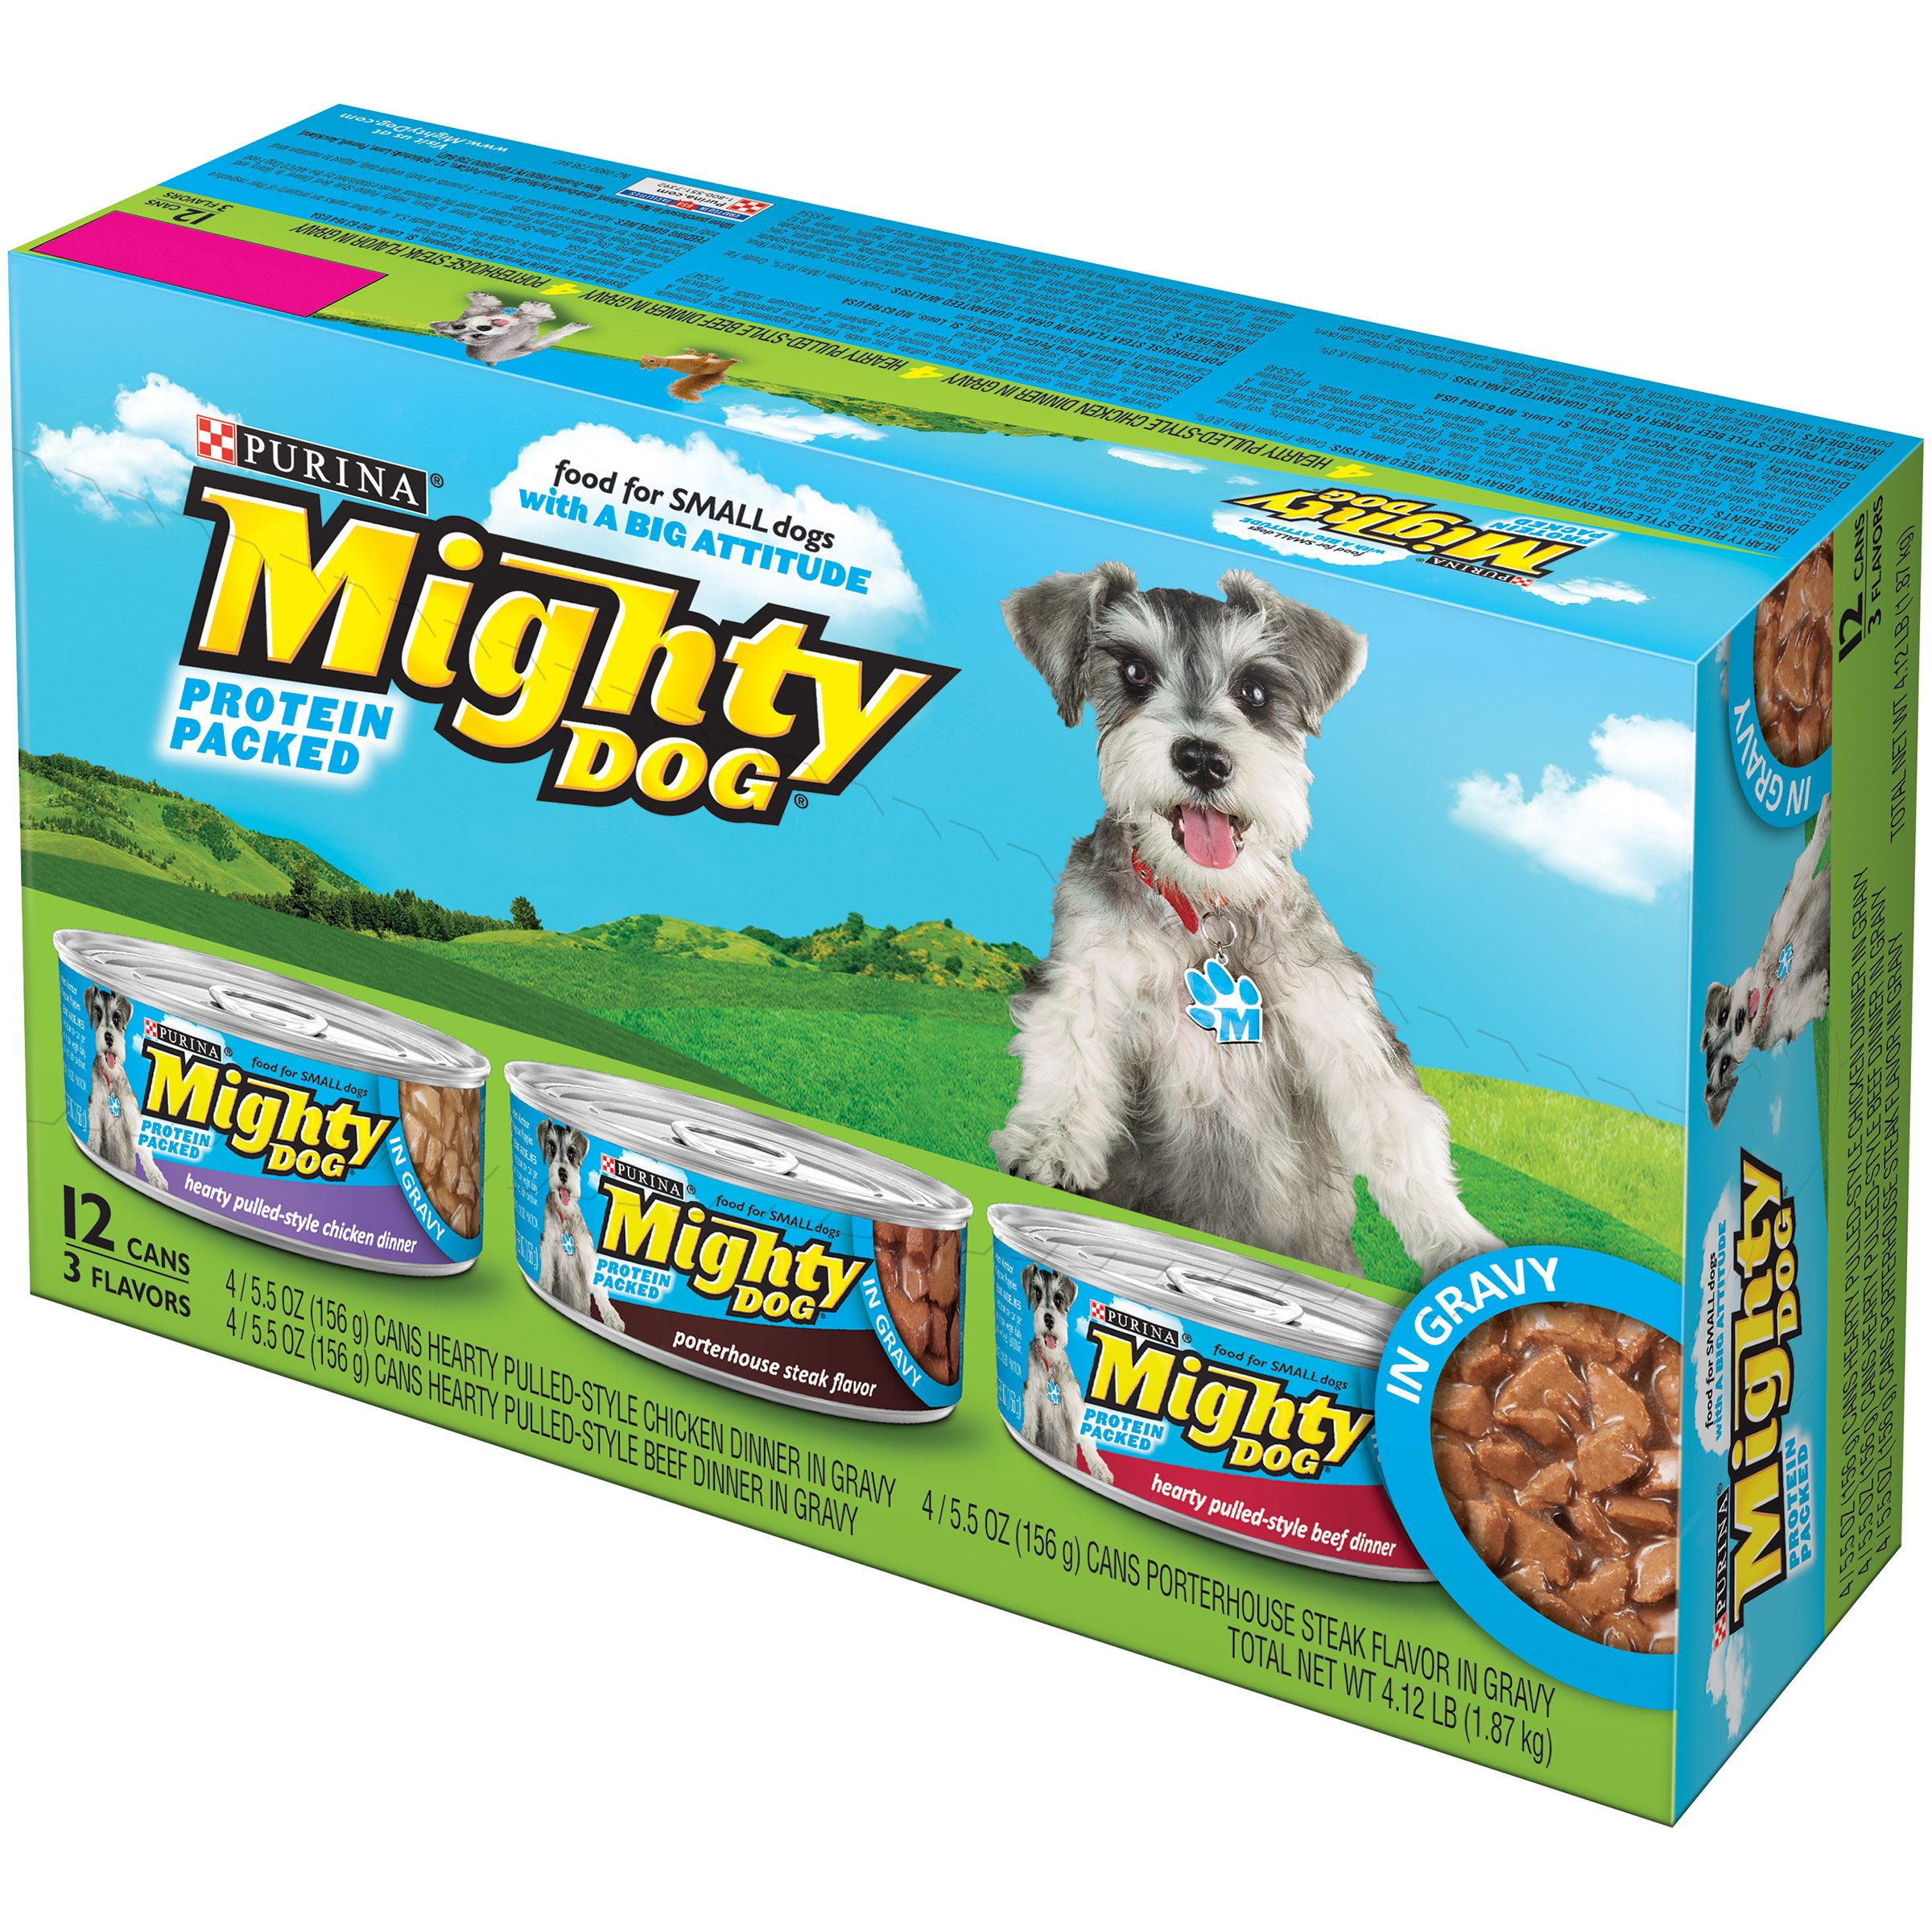 Purina Mighty Dog Hearty Pulled-Style in Gravy Variety Pack Wet Dog Food, 5.5 Oz, Case of 12